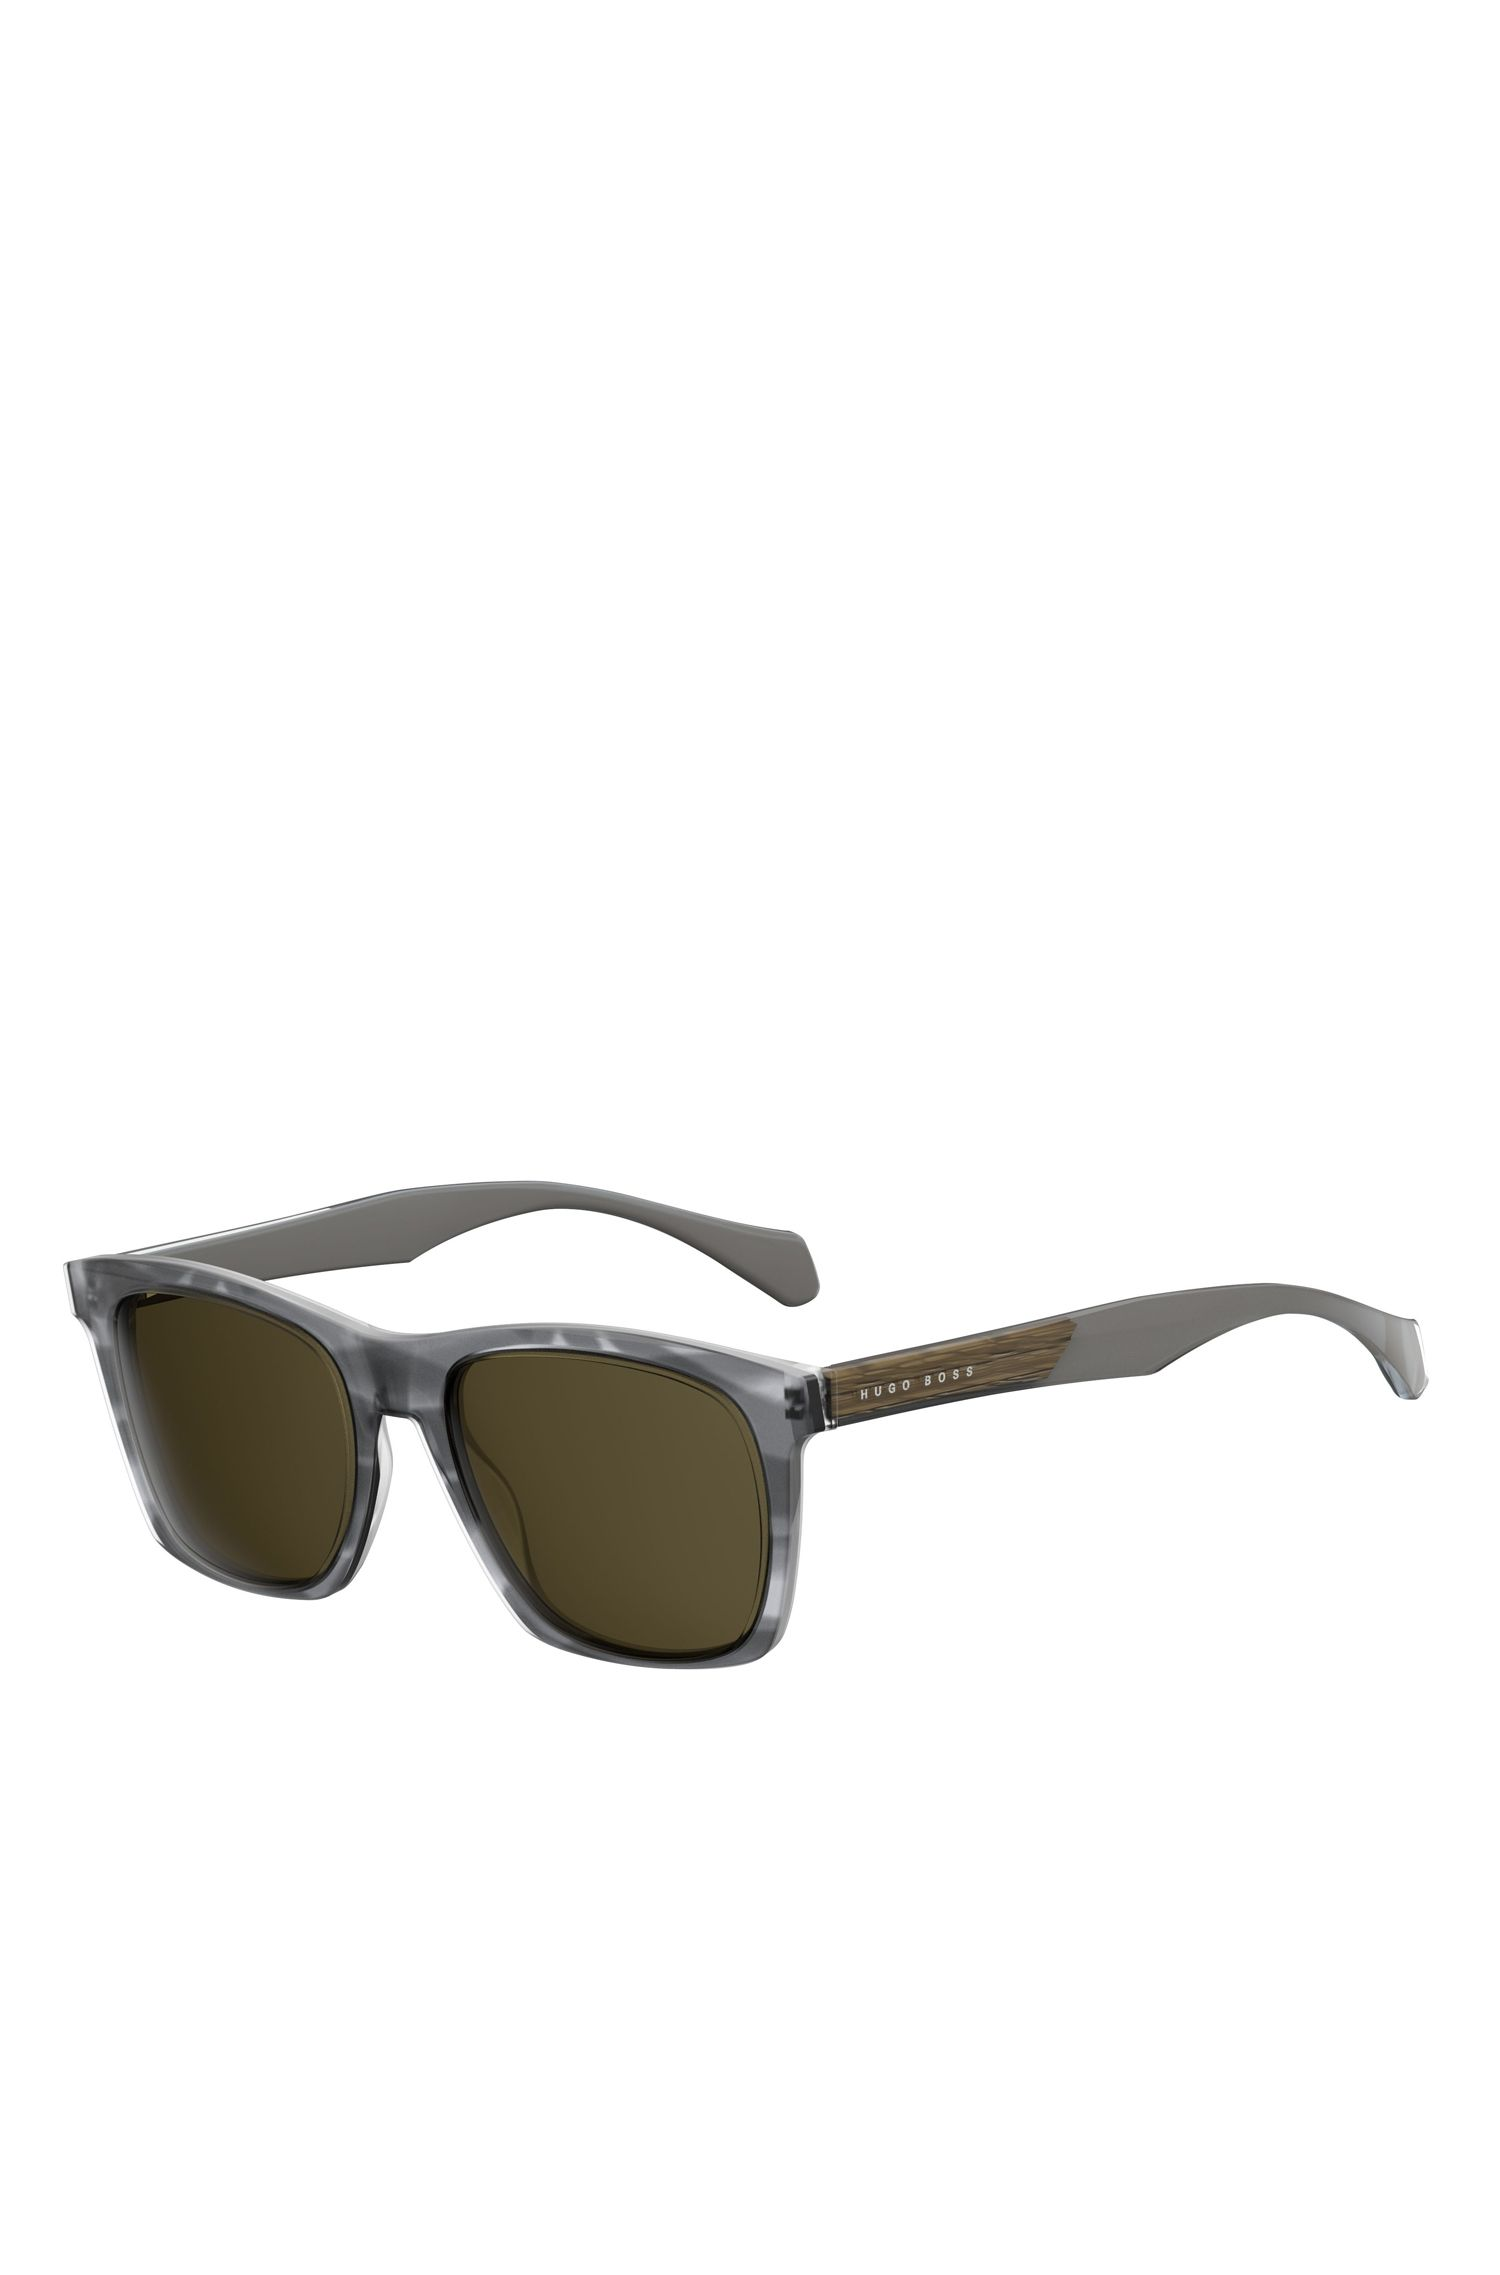 Grey Acetate Rectangular Sunglasses | BOSS 0911/S